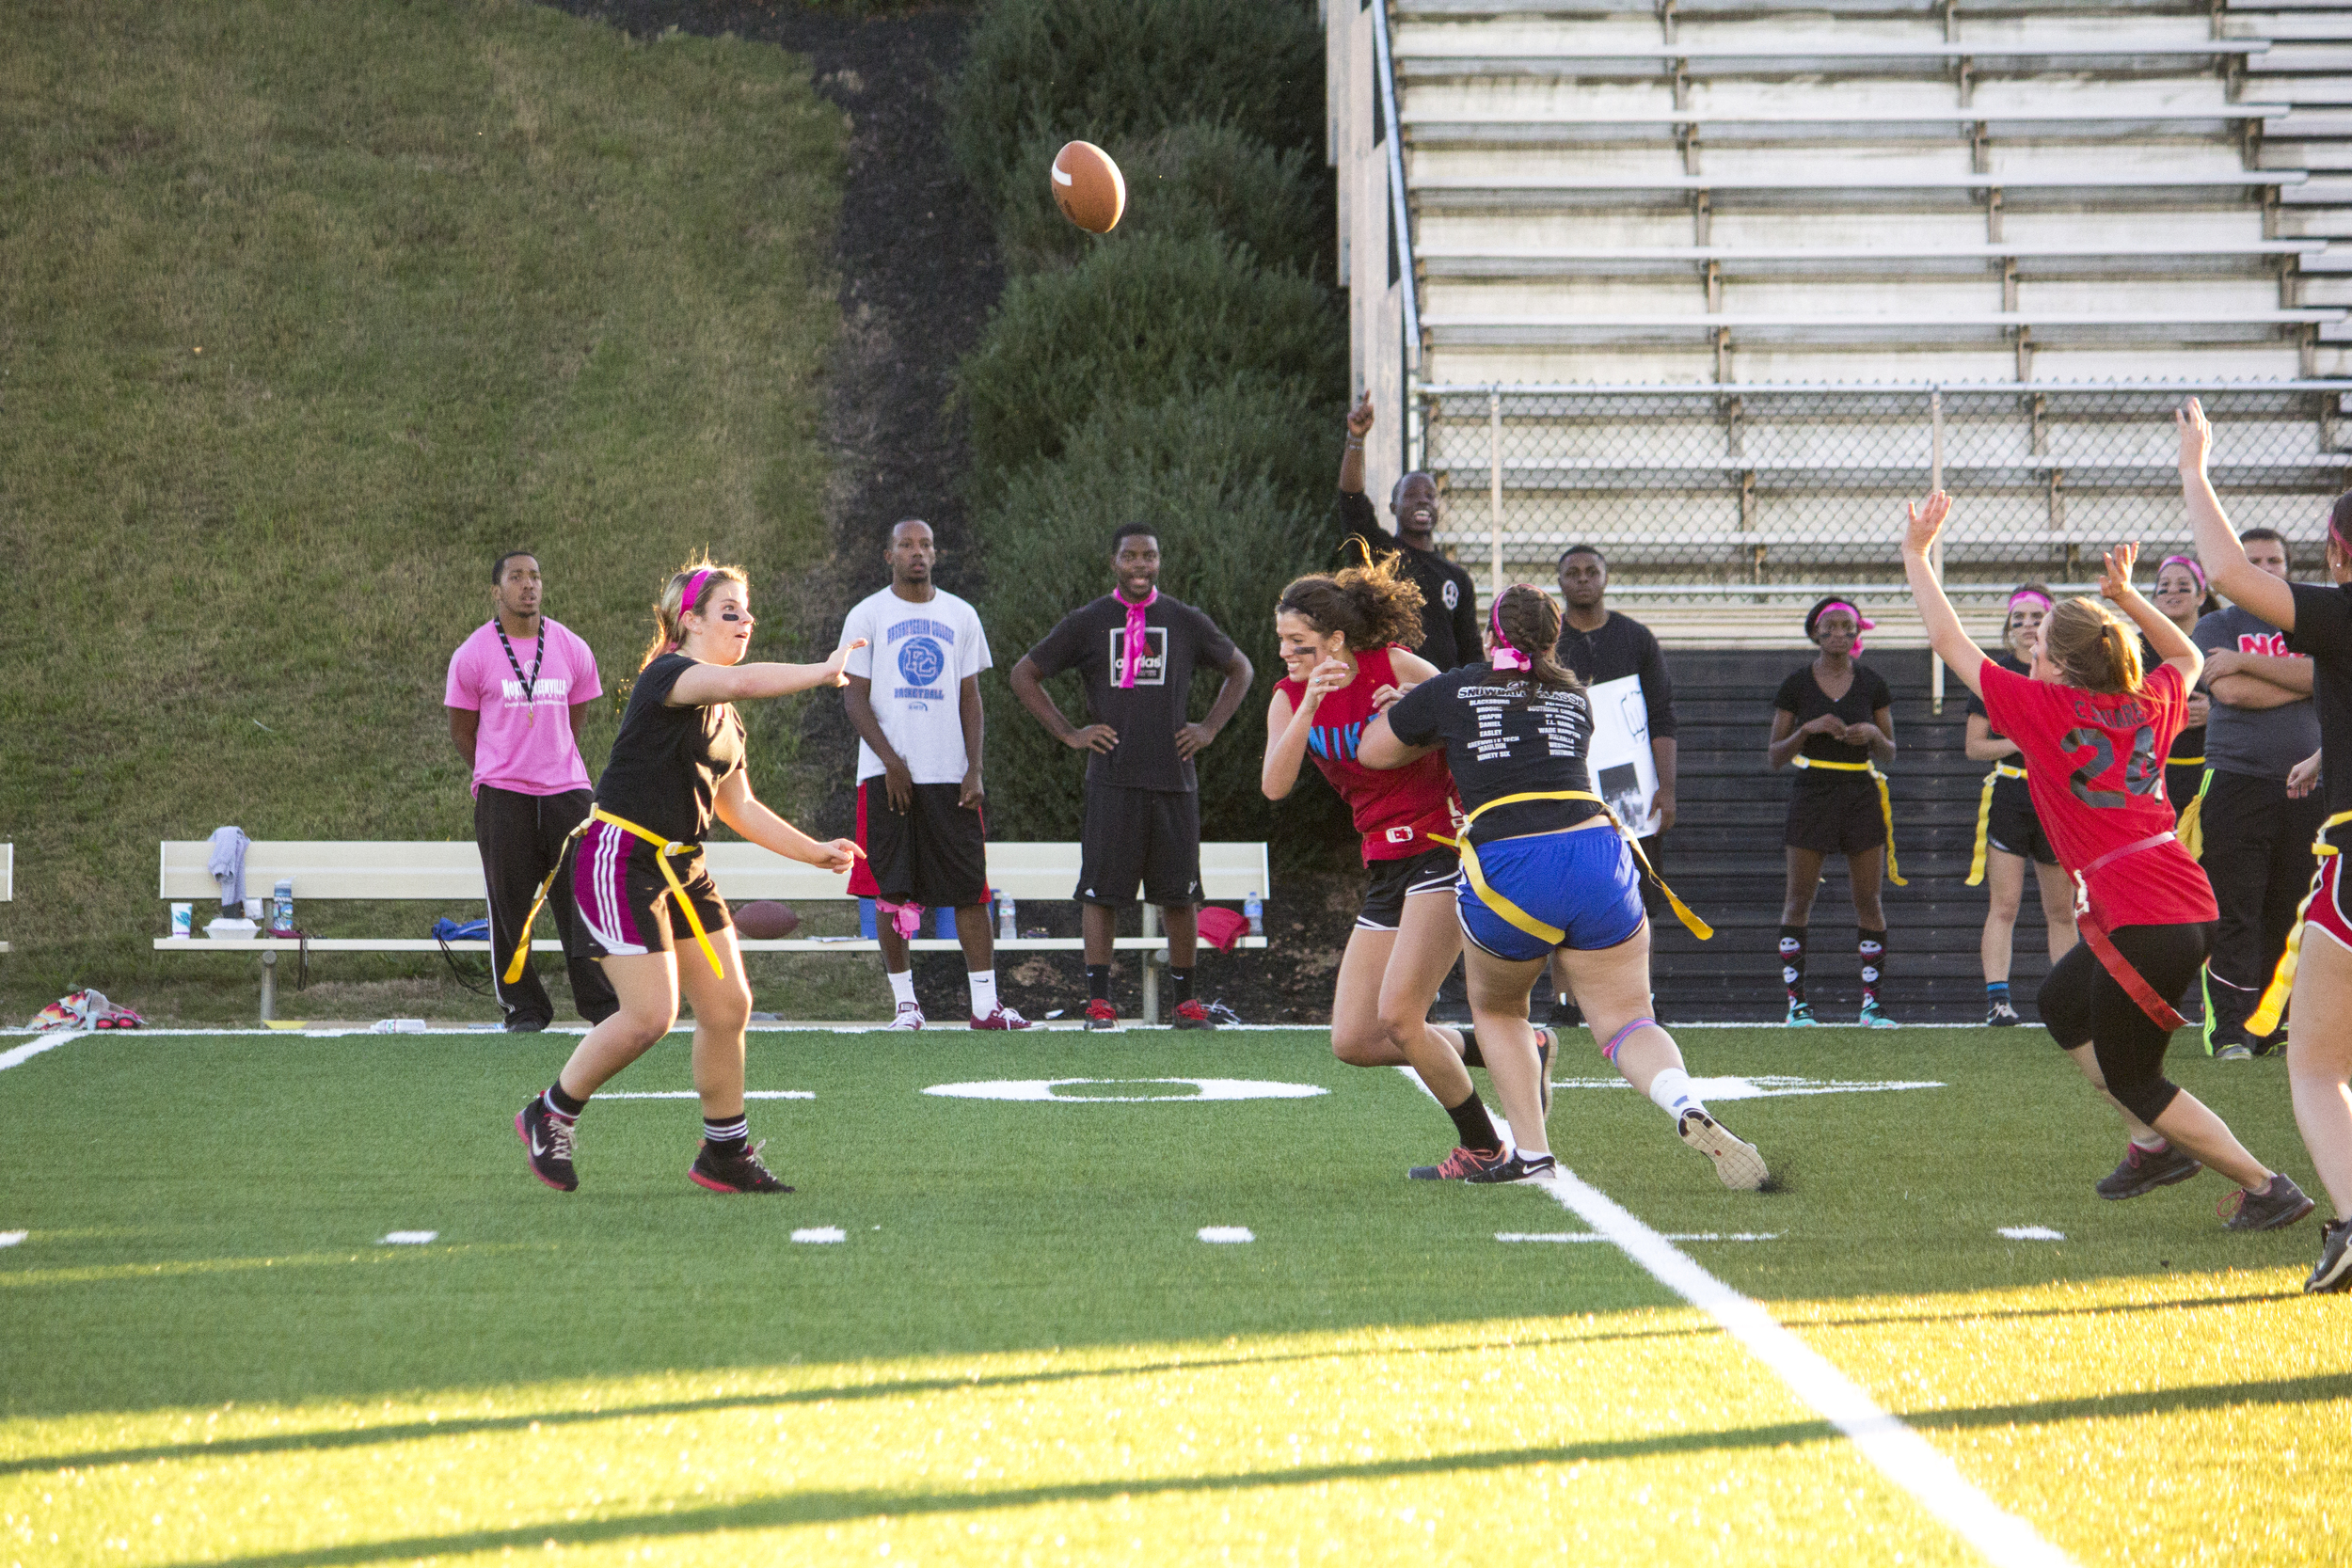 Junior Alexander Cloer throws the ball downfield to one of her teammates.